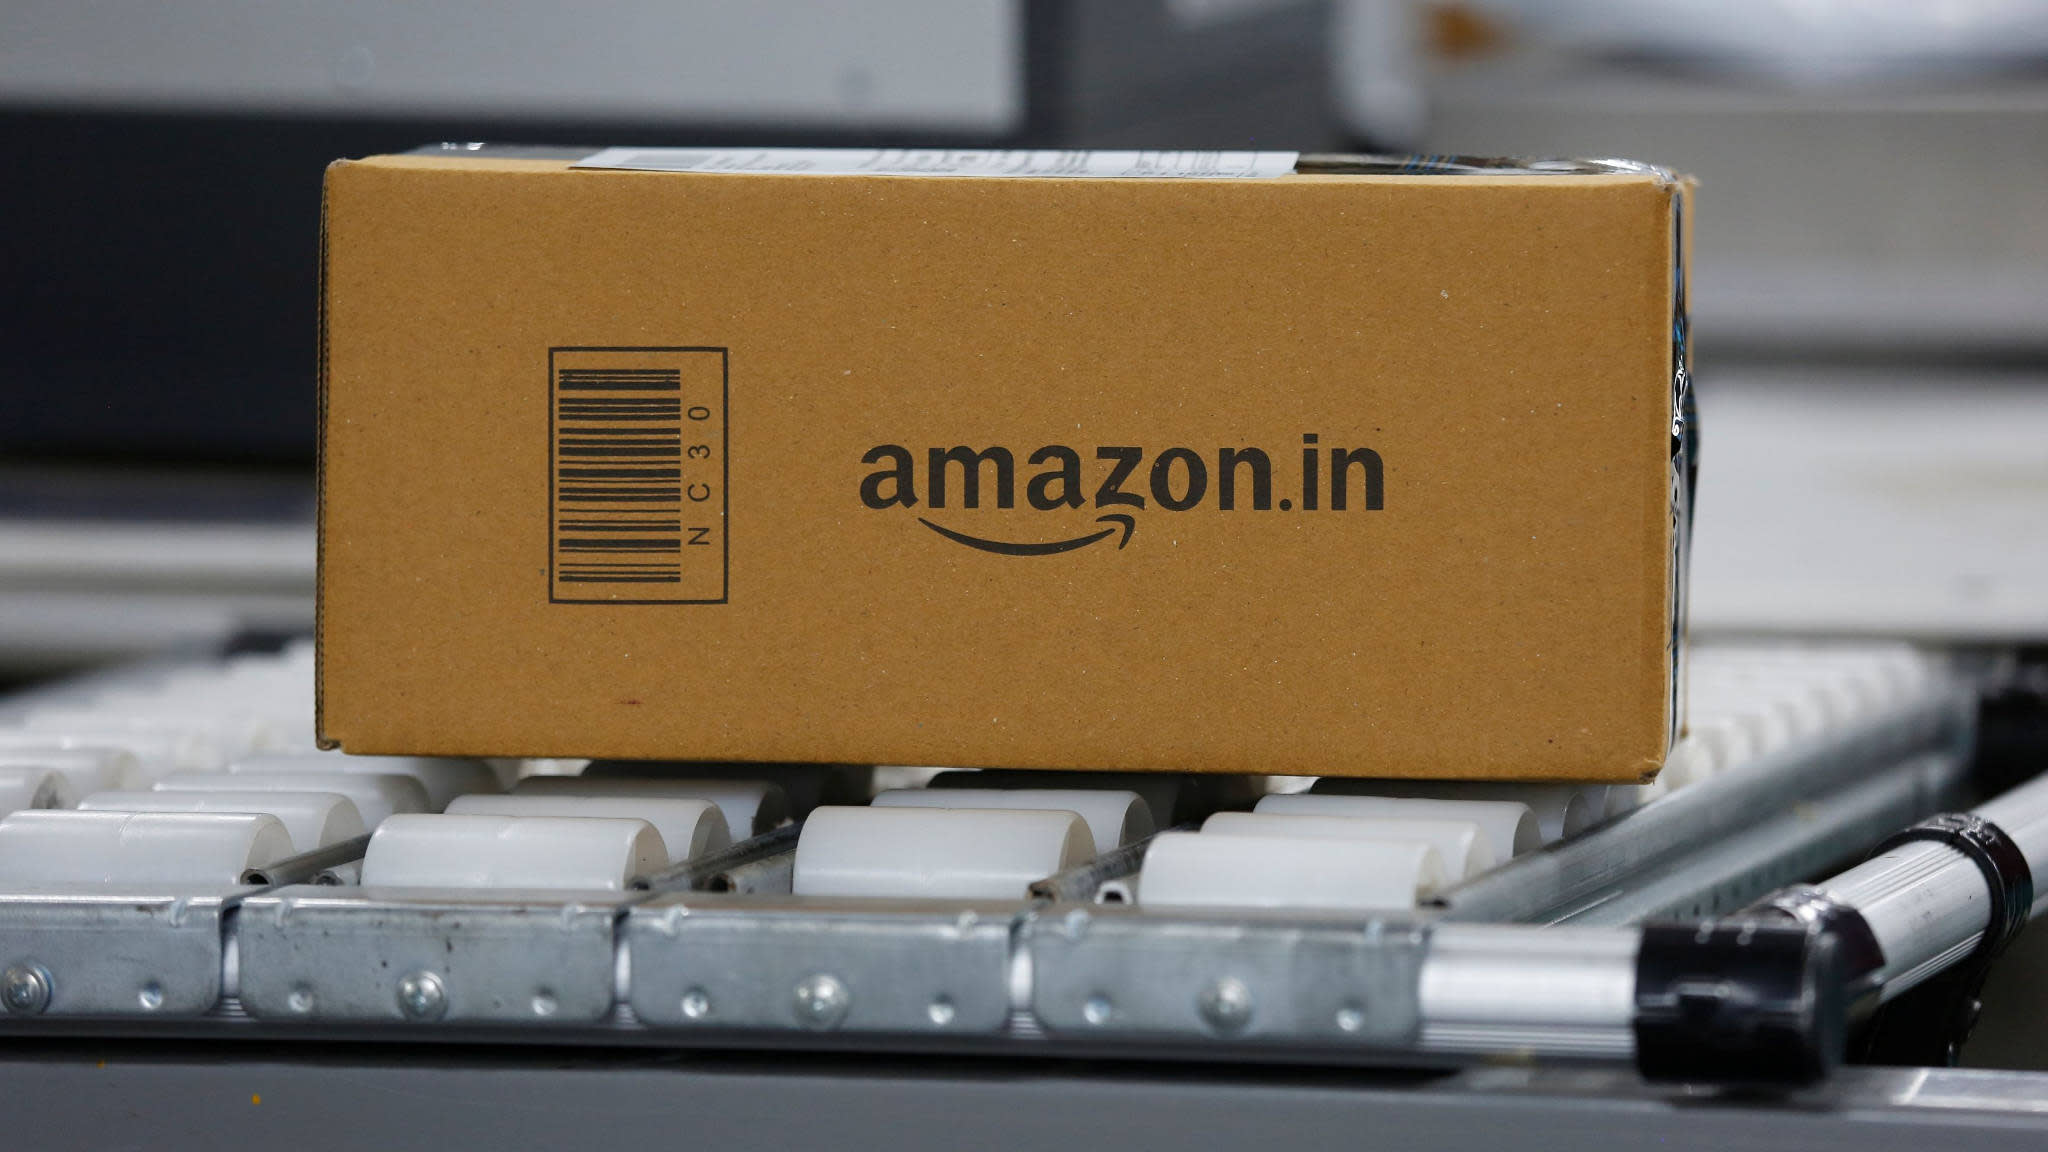 Amazon looking to setup physical retail stores in India